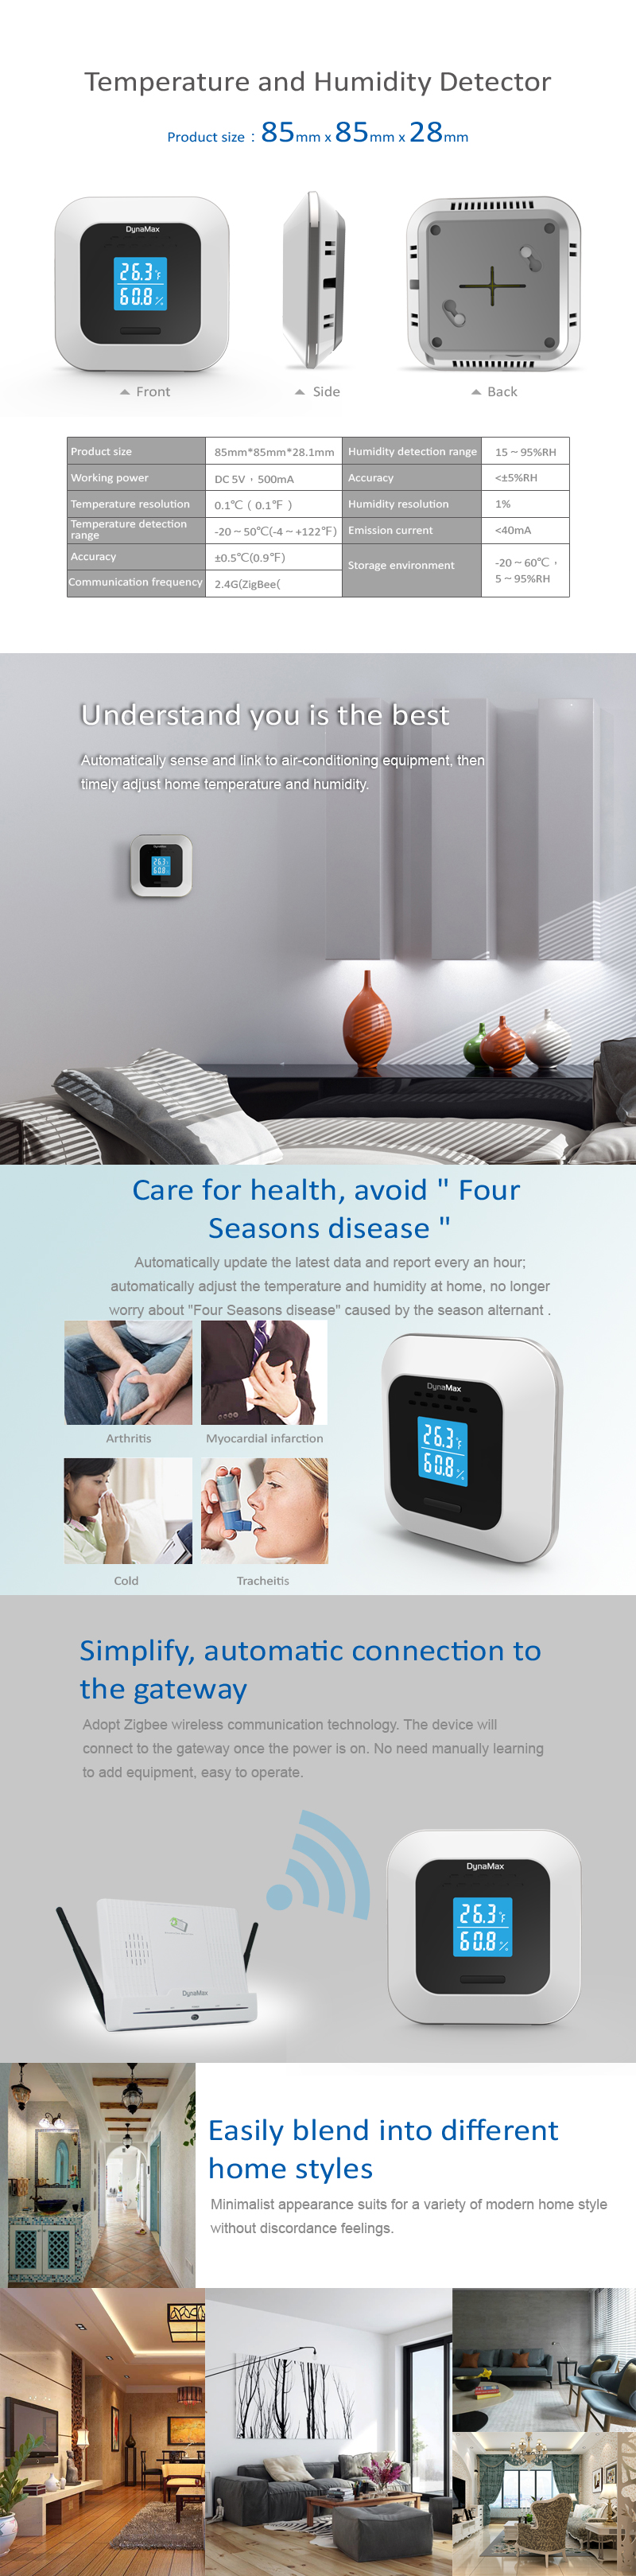 Temperature and Humidity Detector